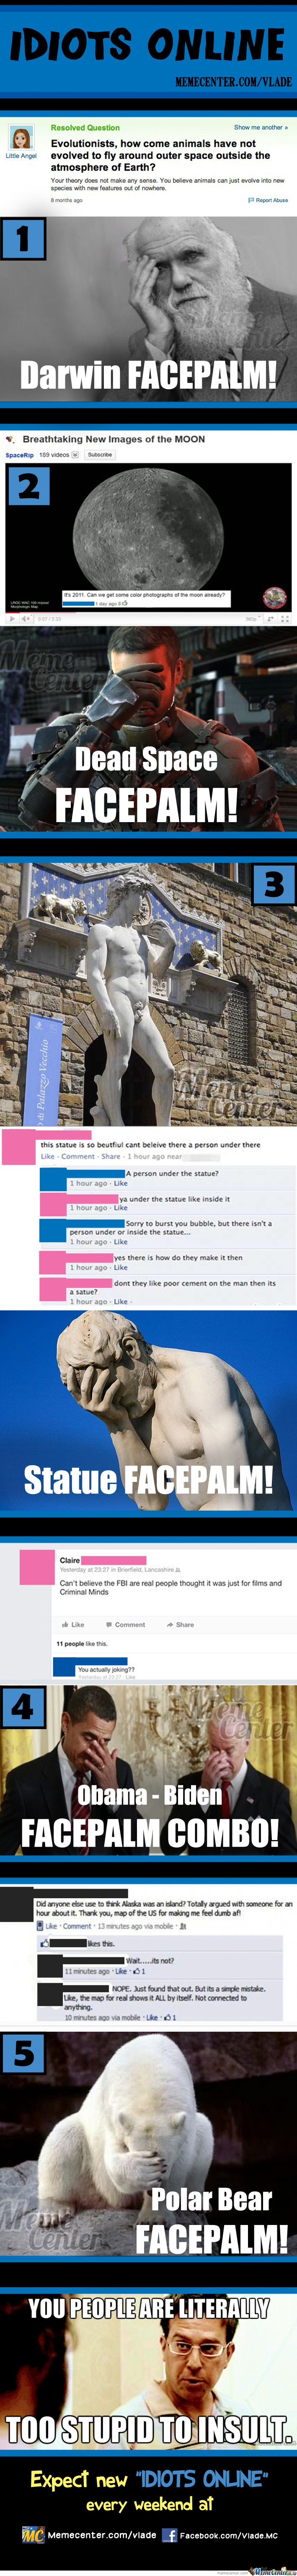 Idiots online 1- i know its mean to make fun of people but i can't help reading these... These are freaking hilarious.